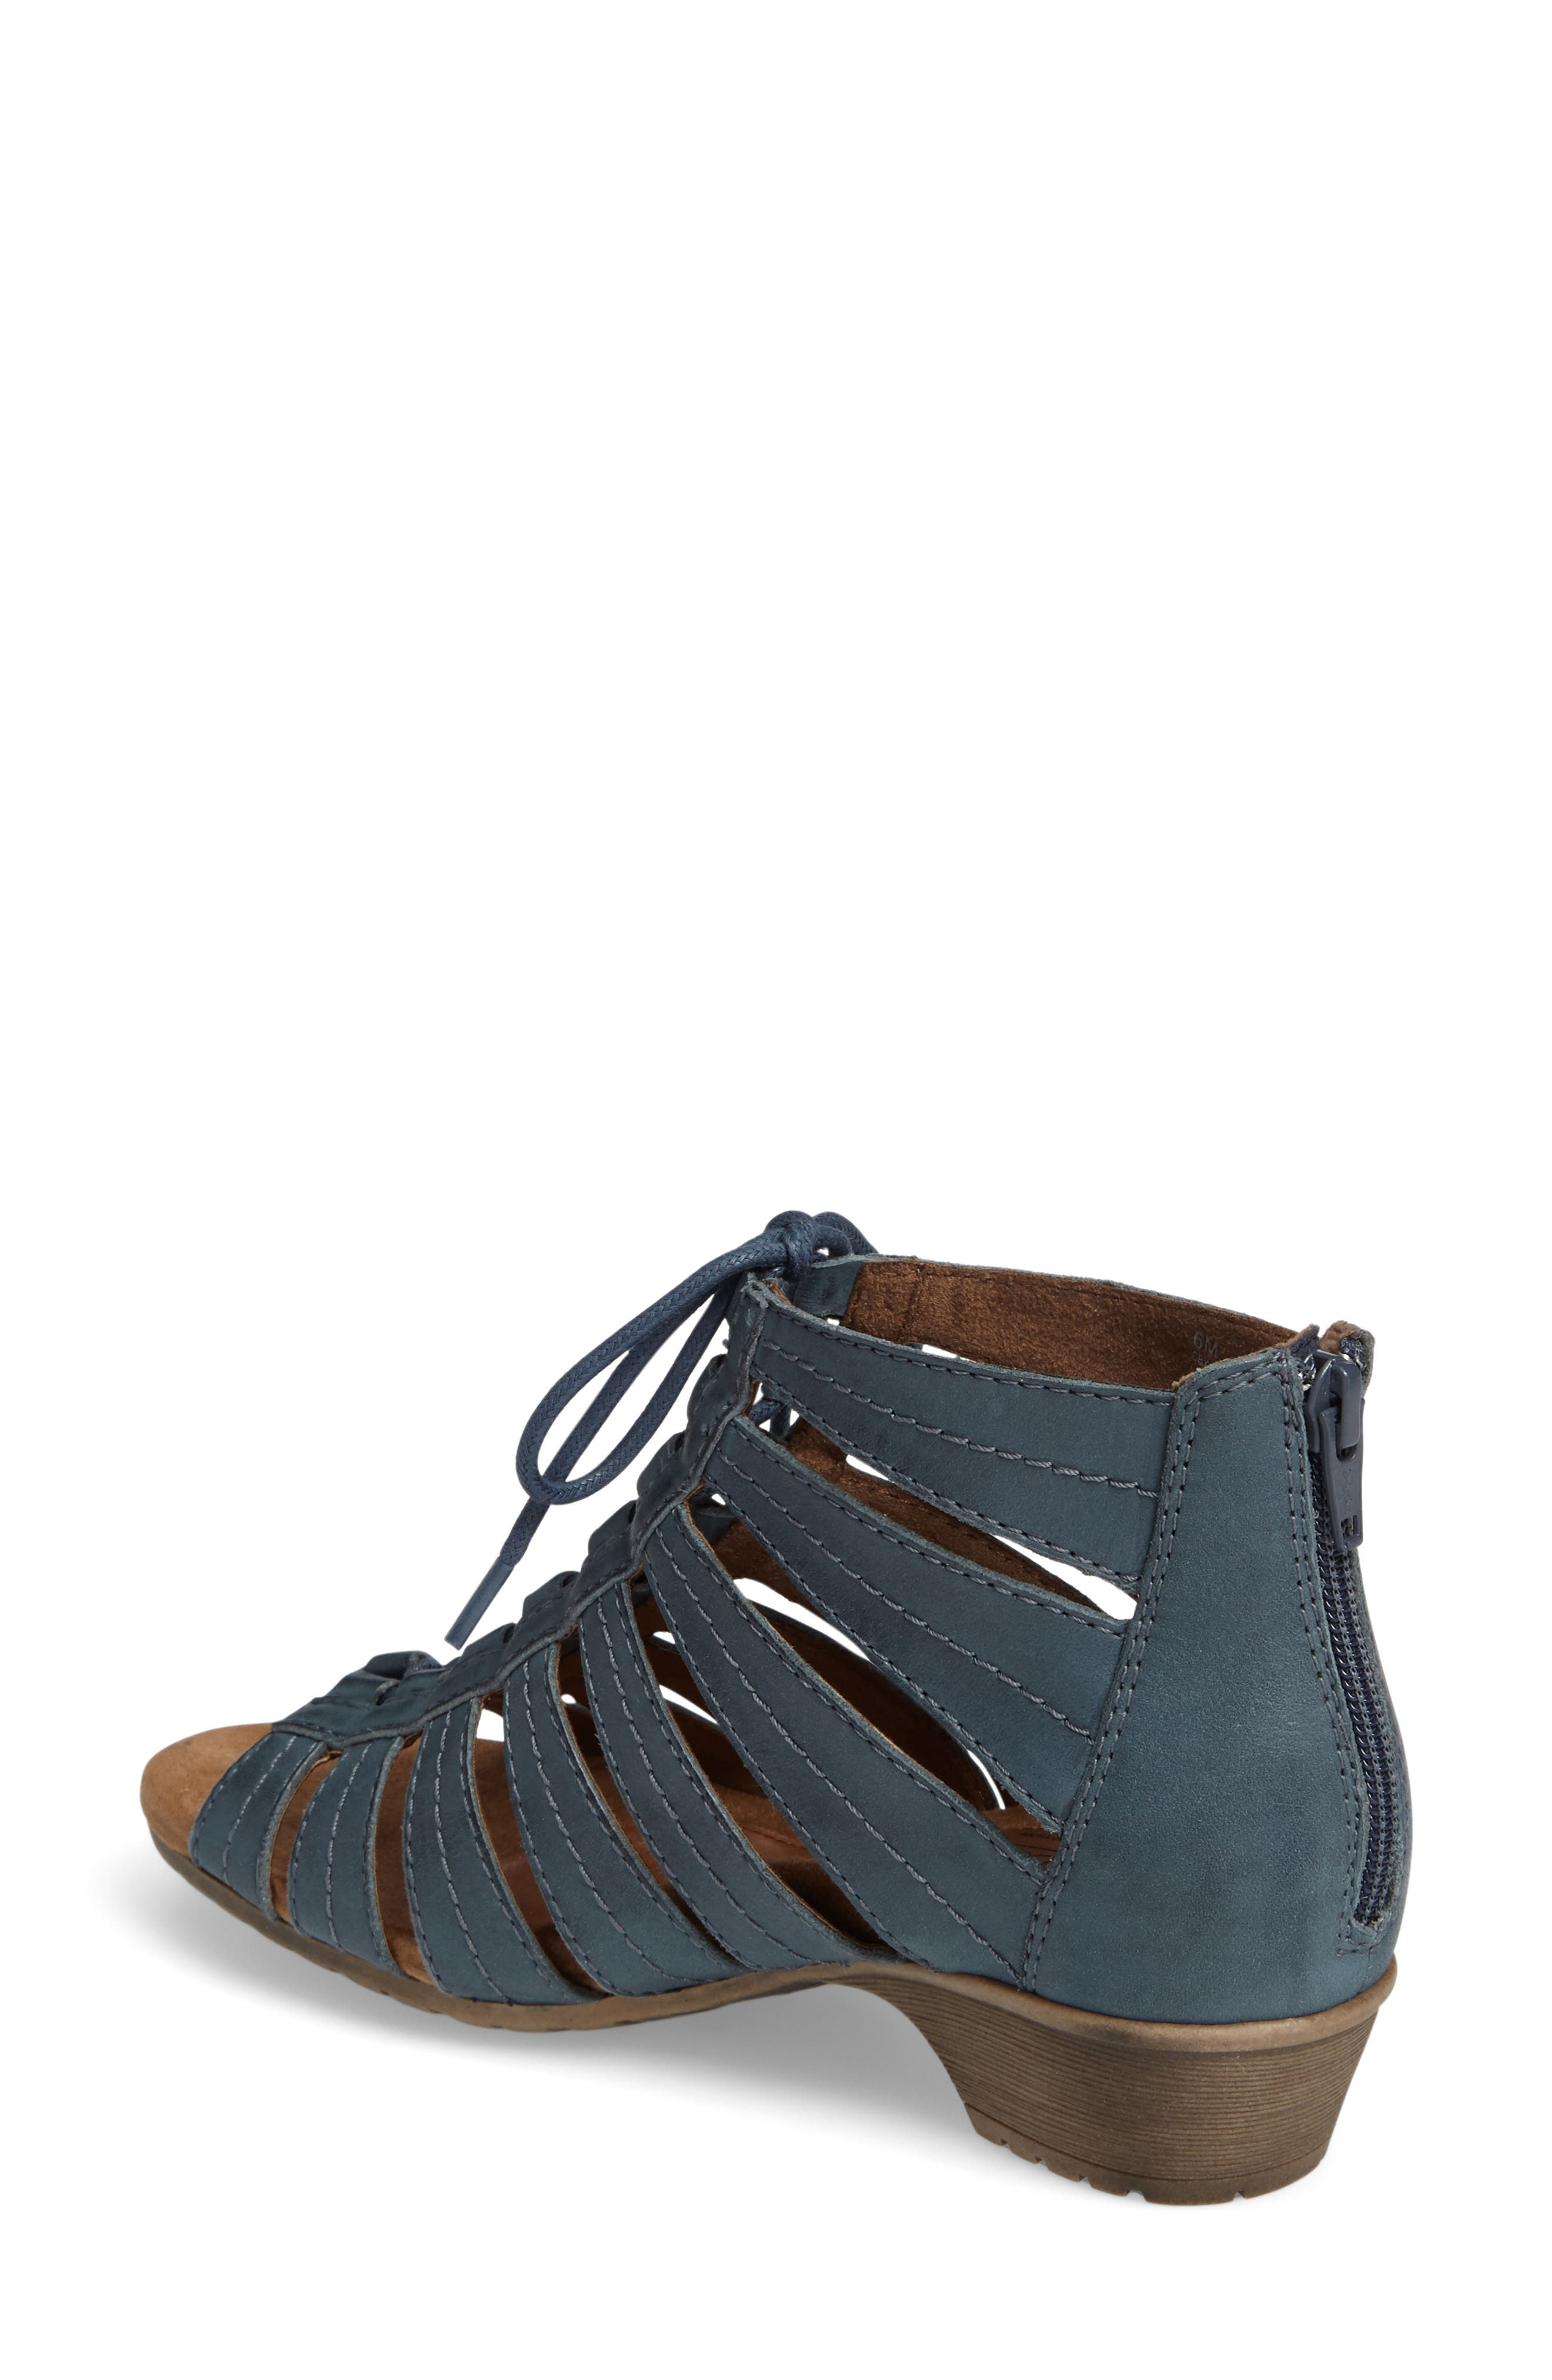 'Gabby' Lace-Up Sandal,                             Alternate thumbnail 15, color,